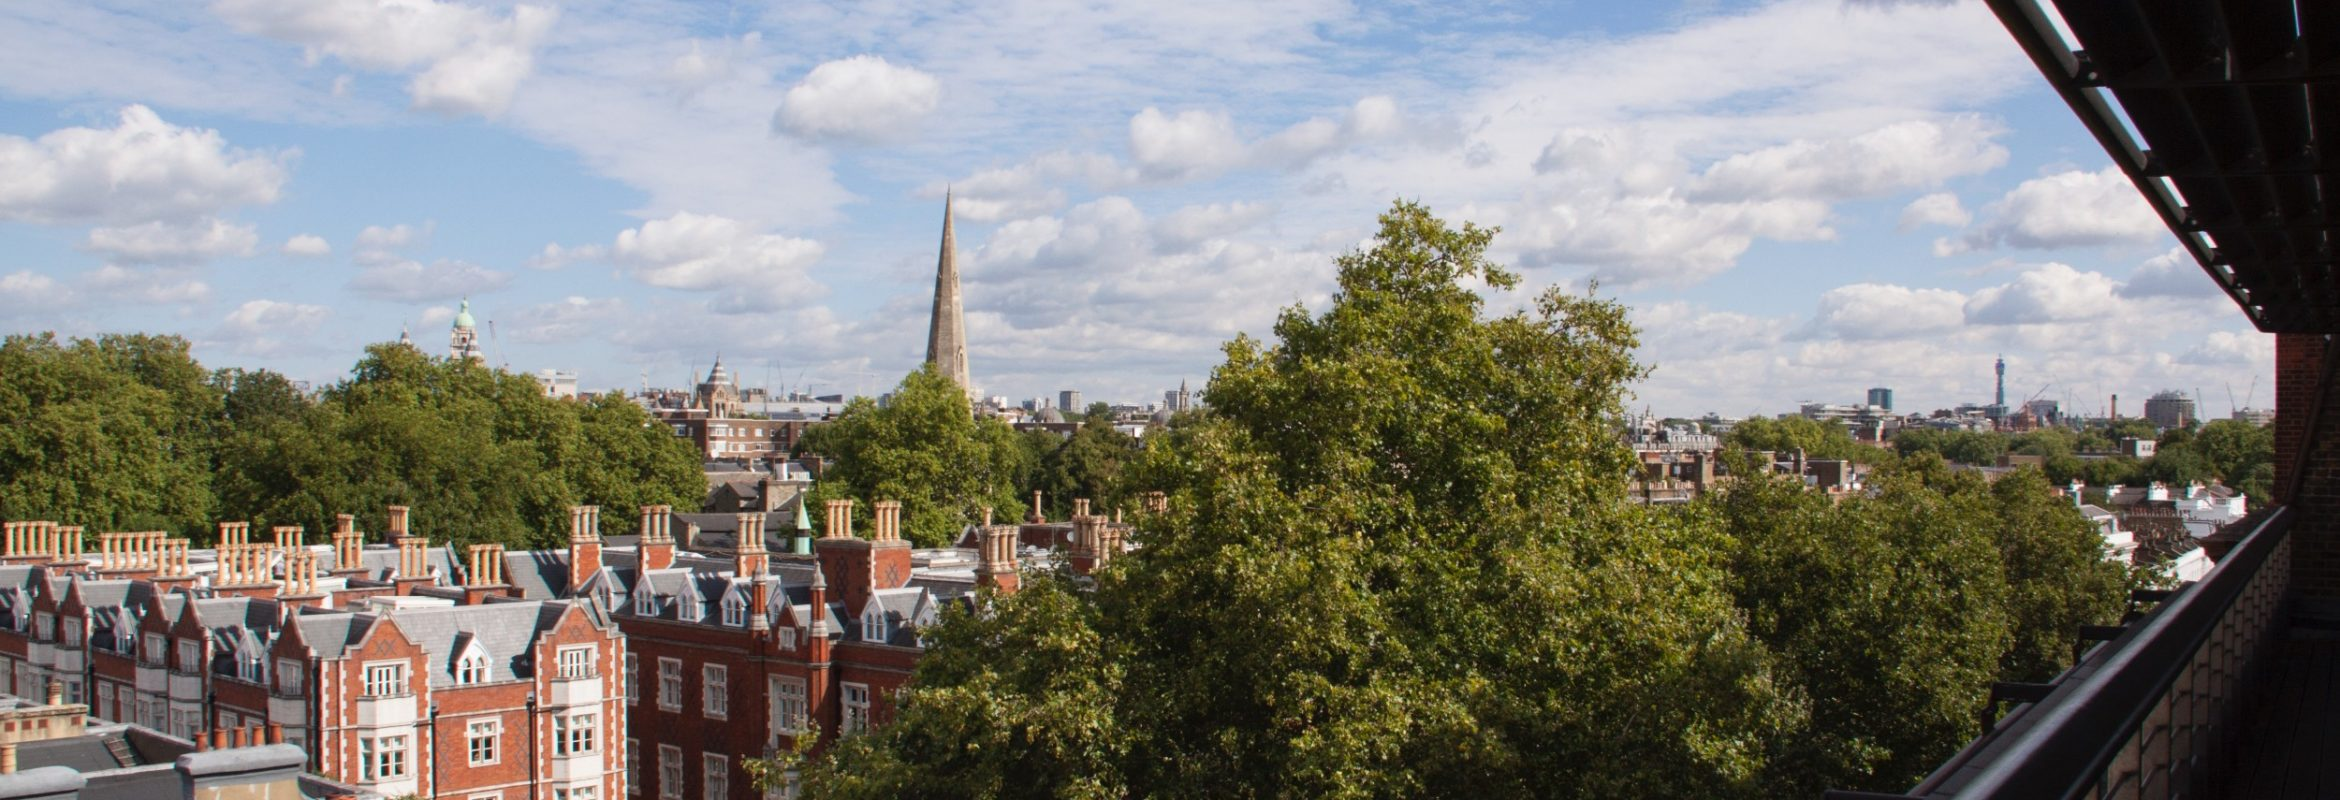 Our lab is located at the Chelsea site of ICR in central London. This is the view from the top floor.